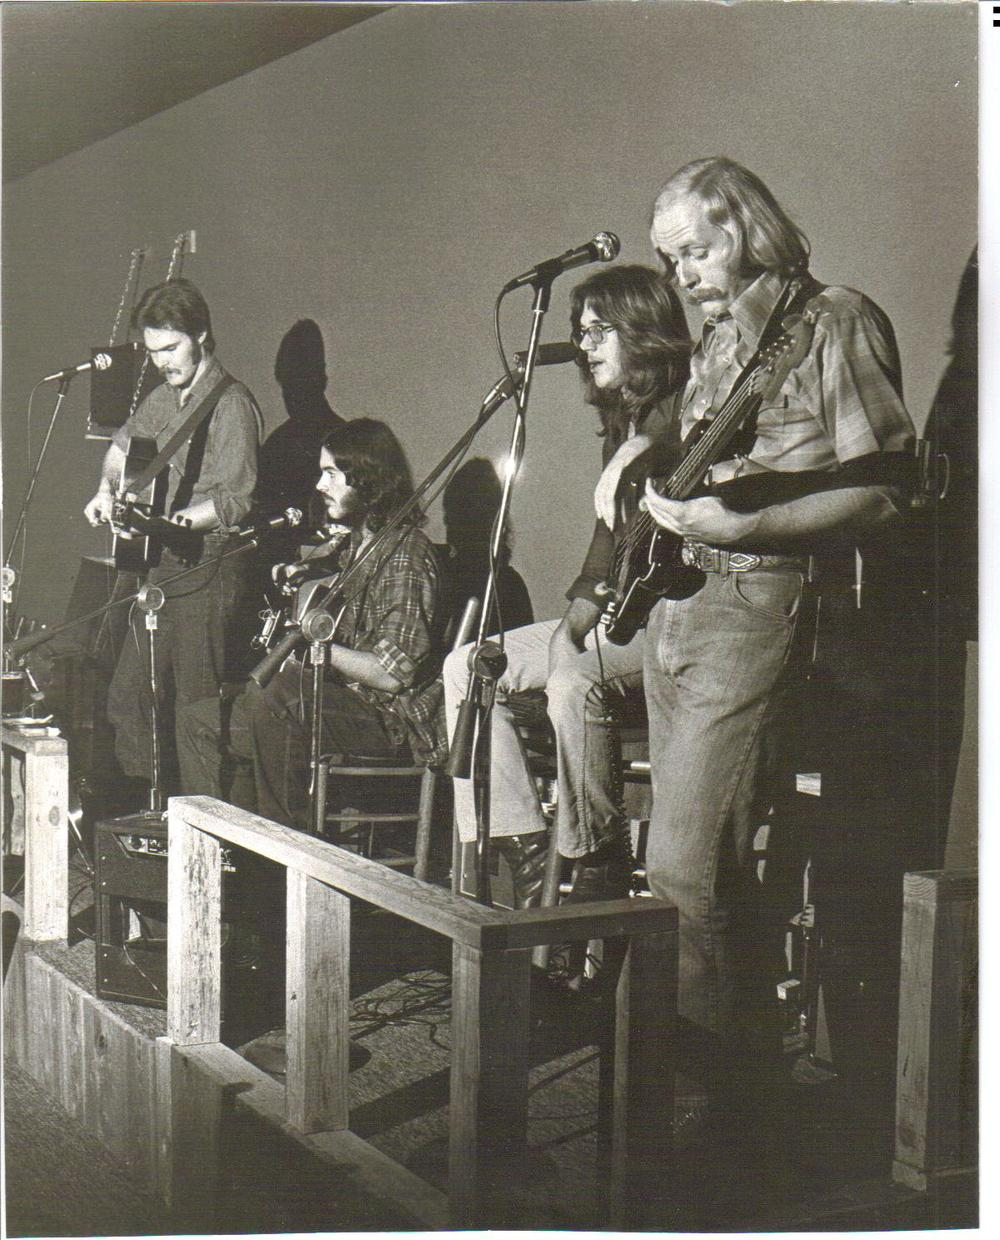 The Full Circle Band @ Mississippi Whiskers, Fall 1974